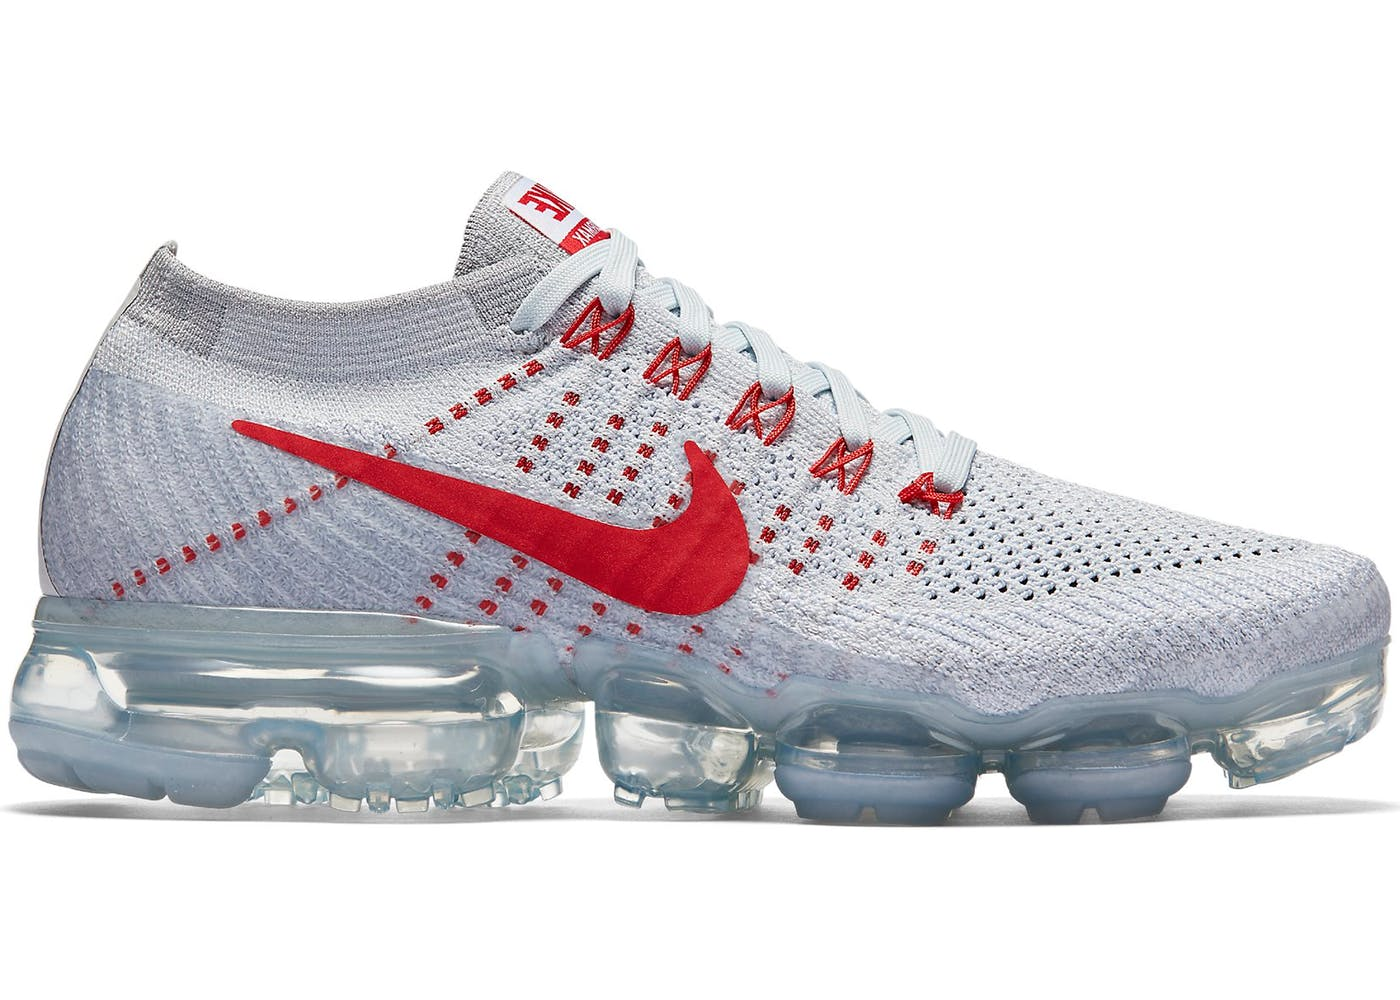 Nike Vapormax All Red